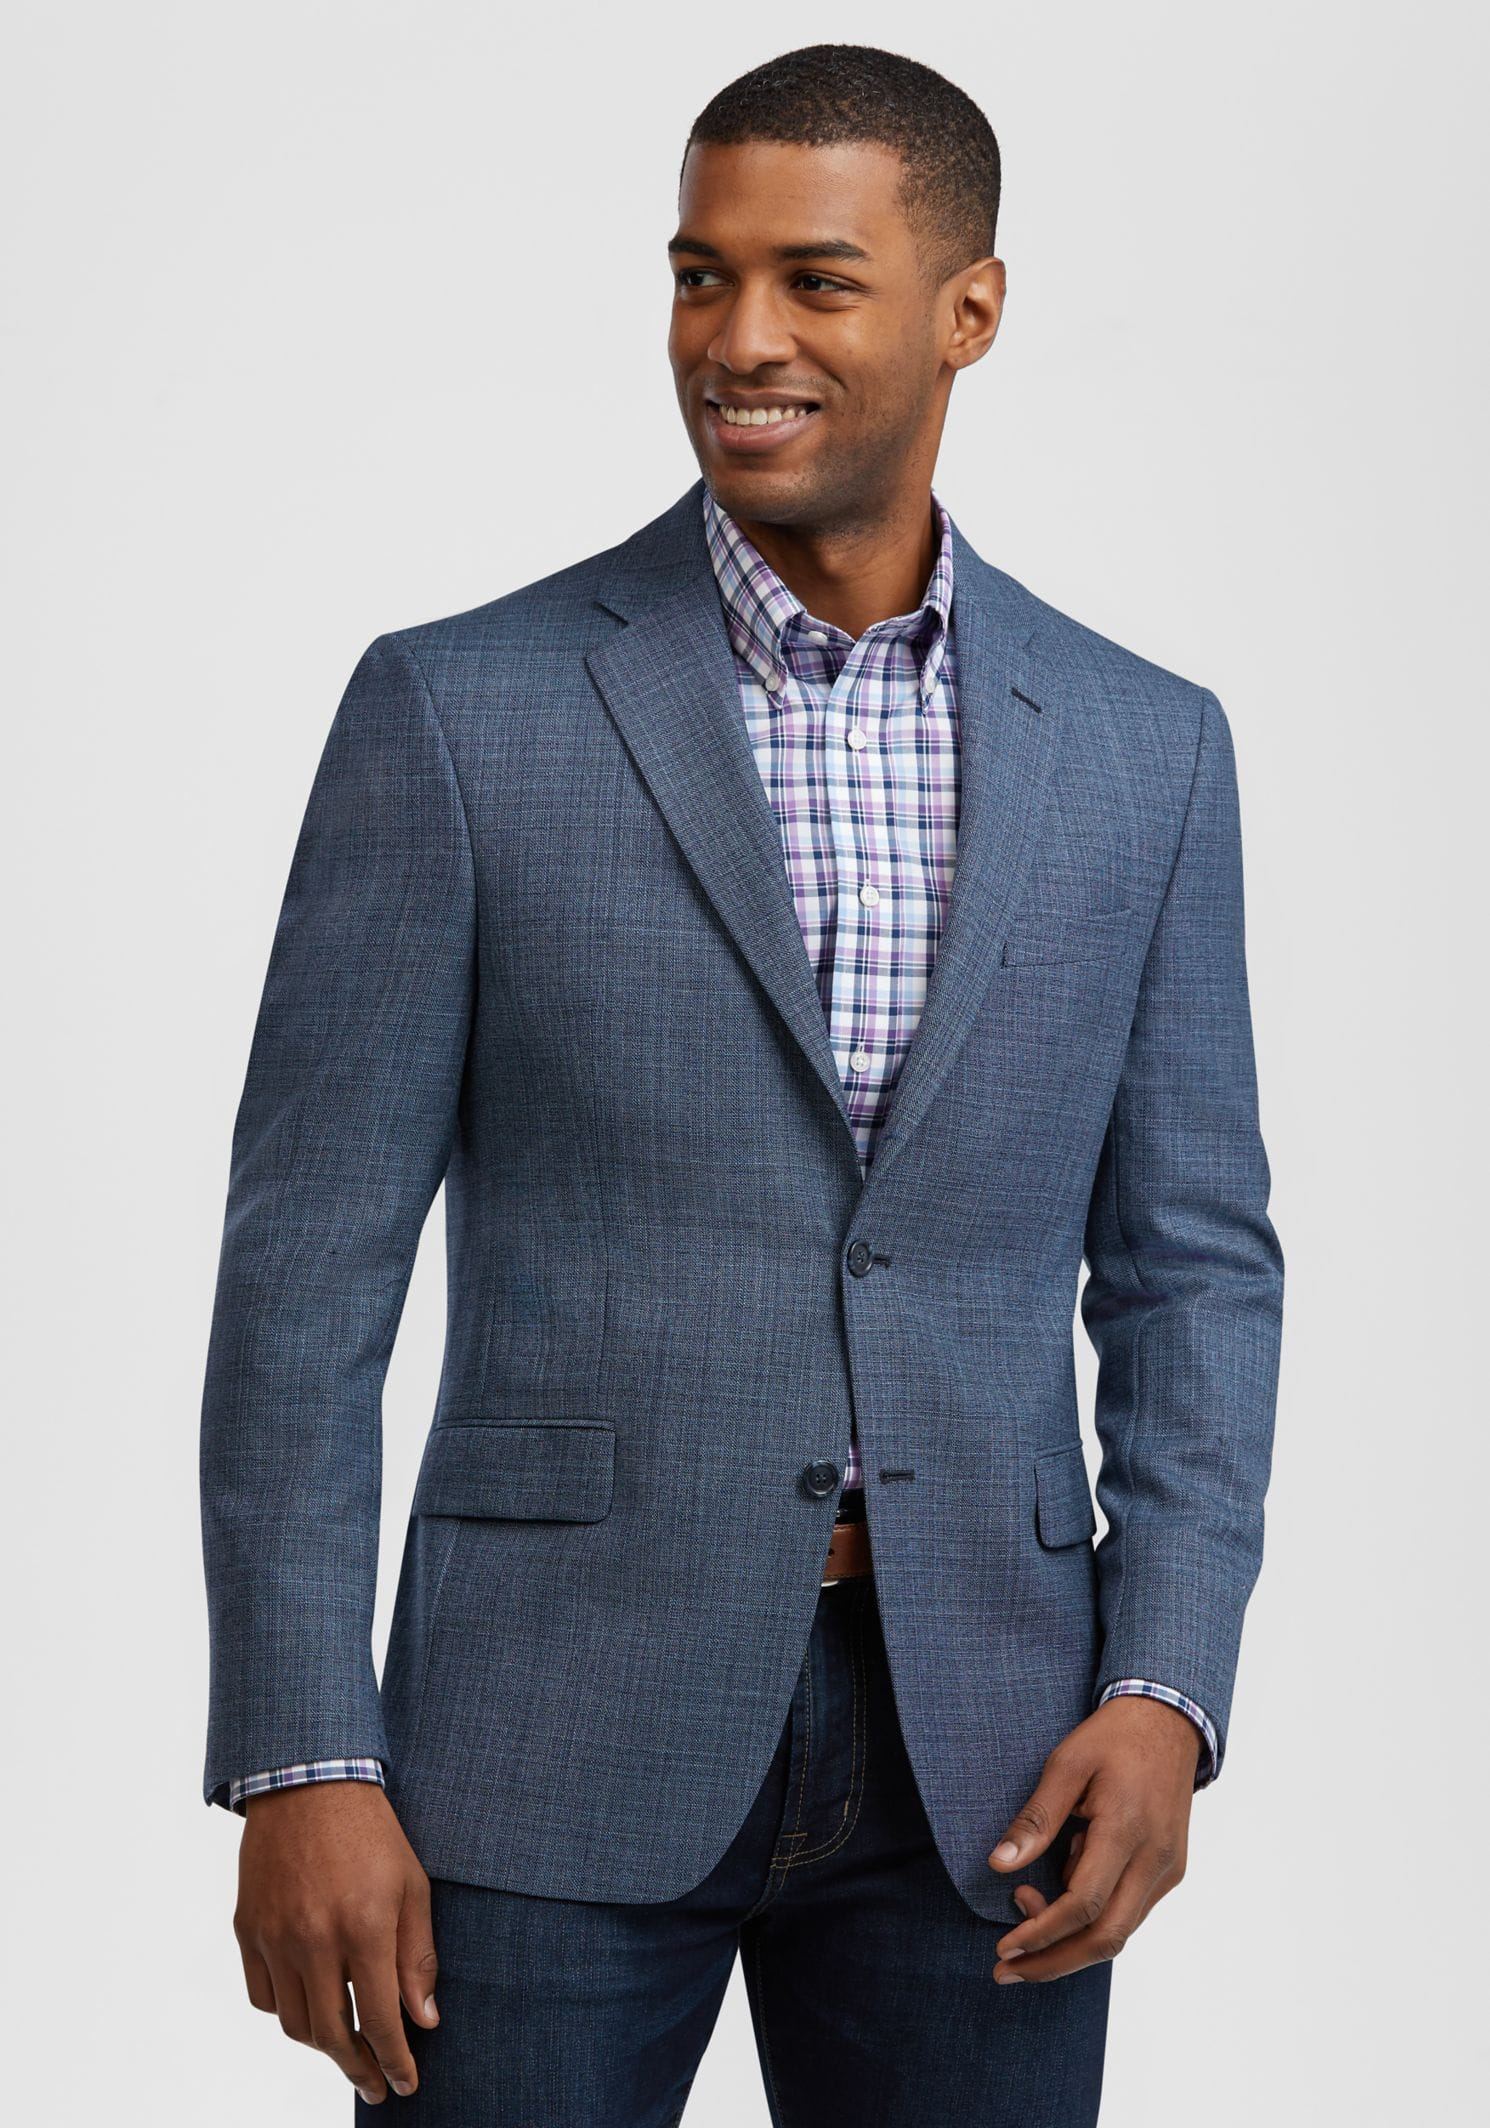 Jos a bank Traveler Collection Traditional Fit Textured Sportcoat $23.50 shipped